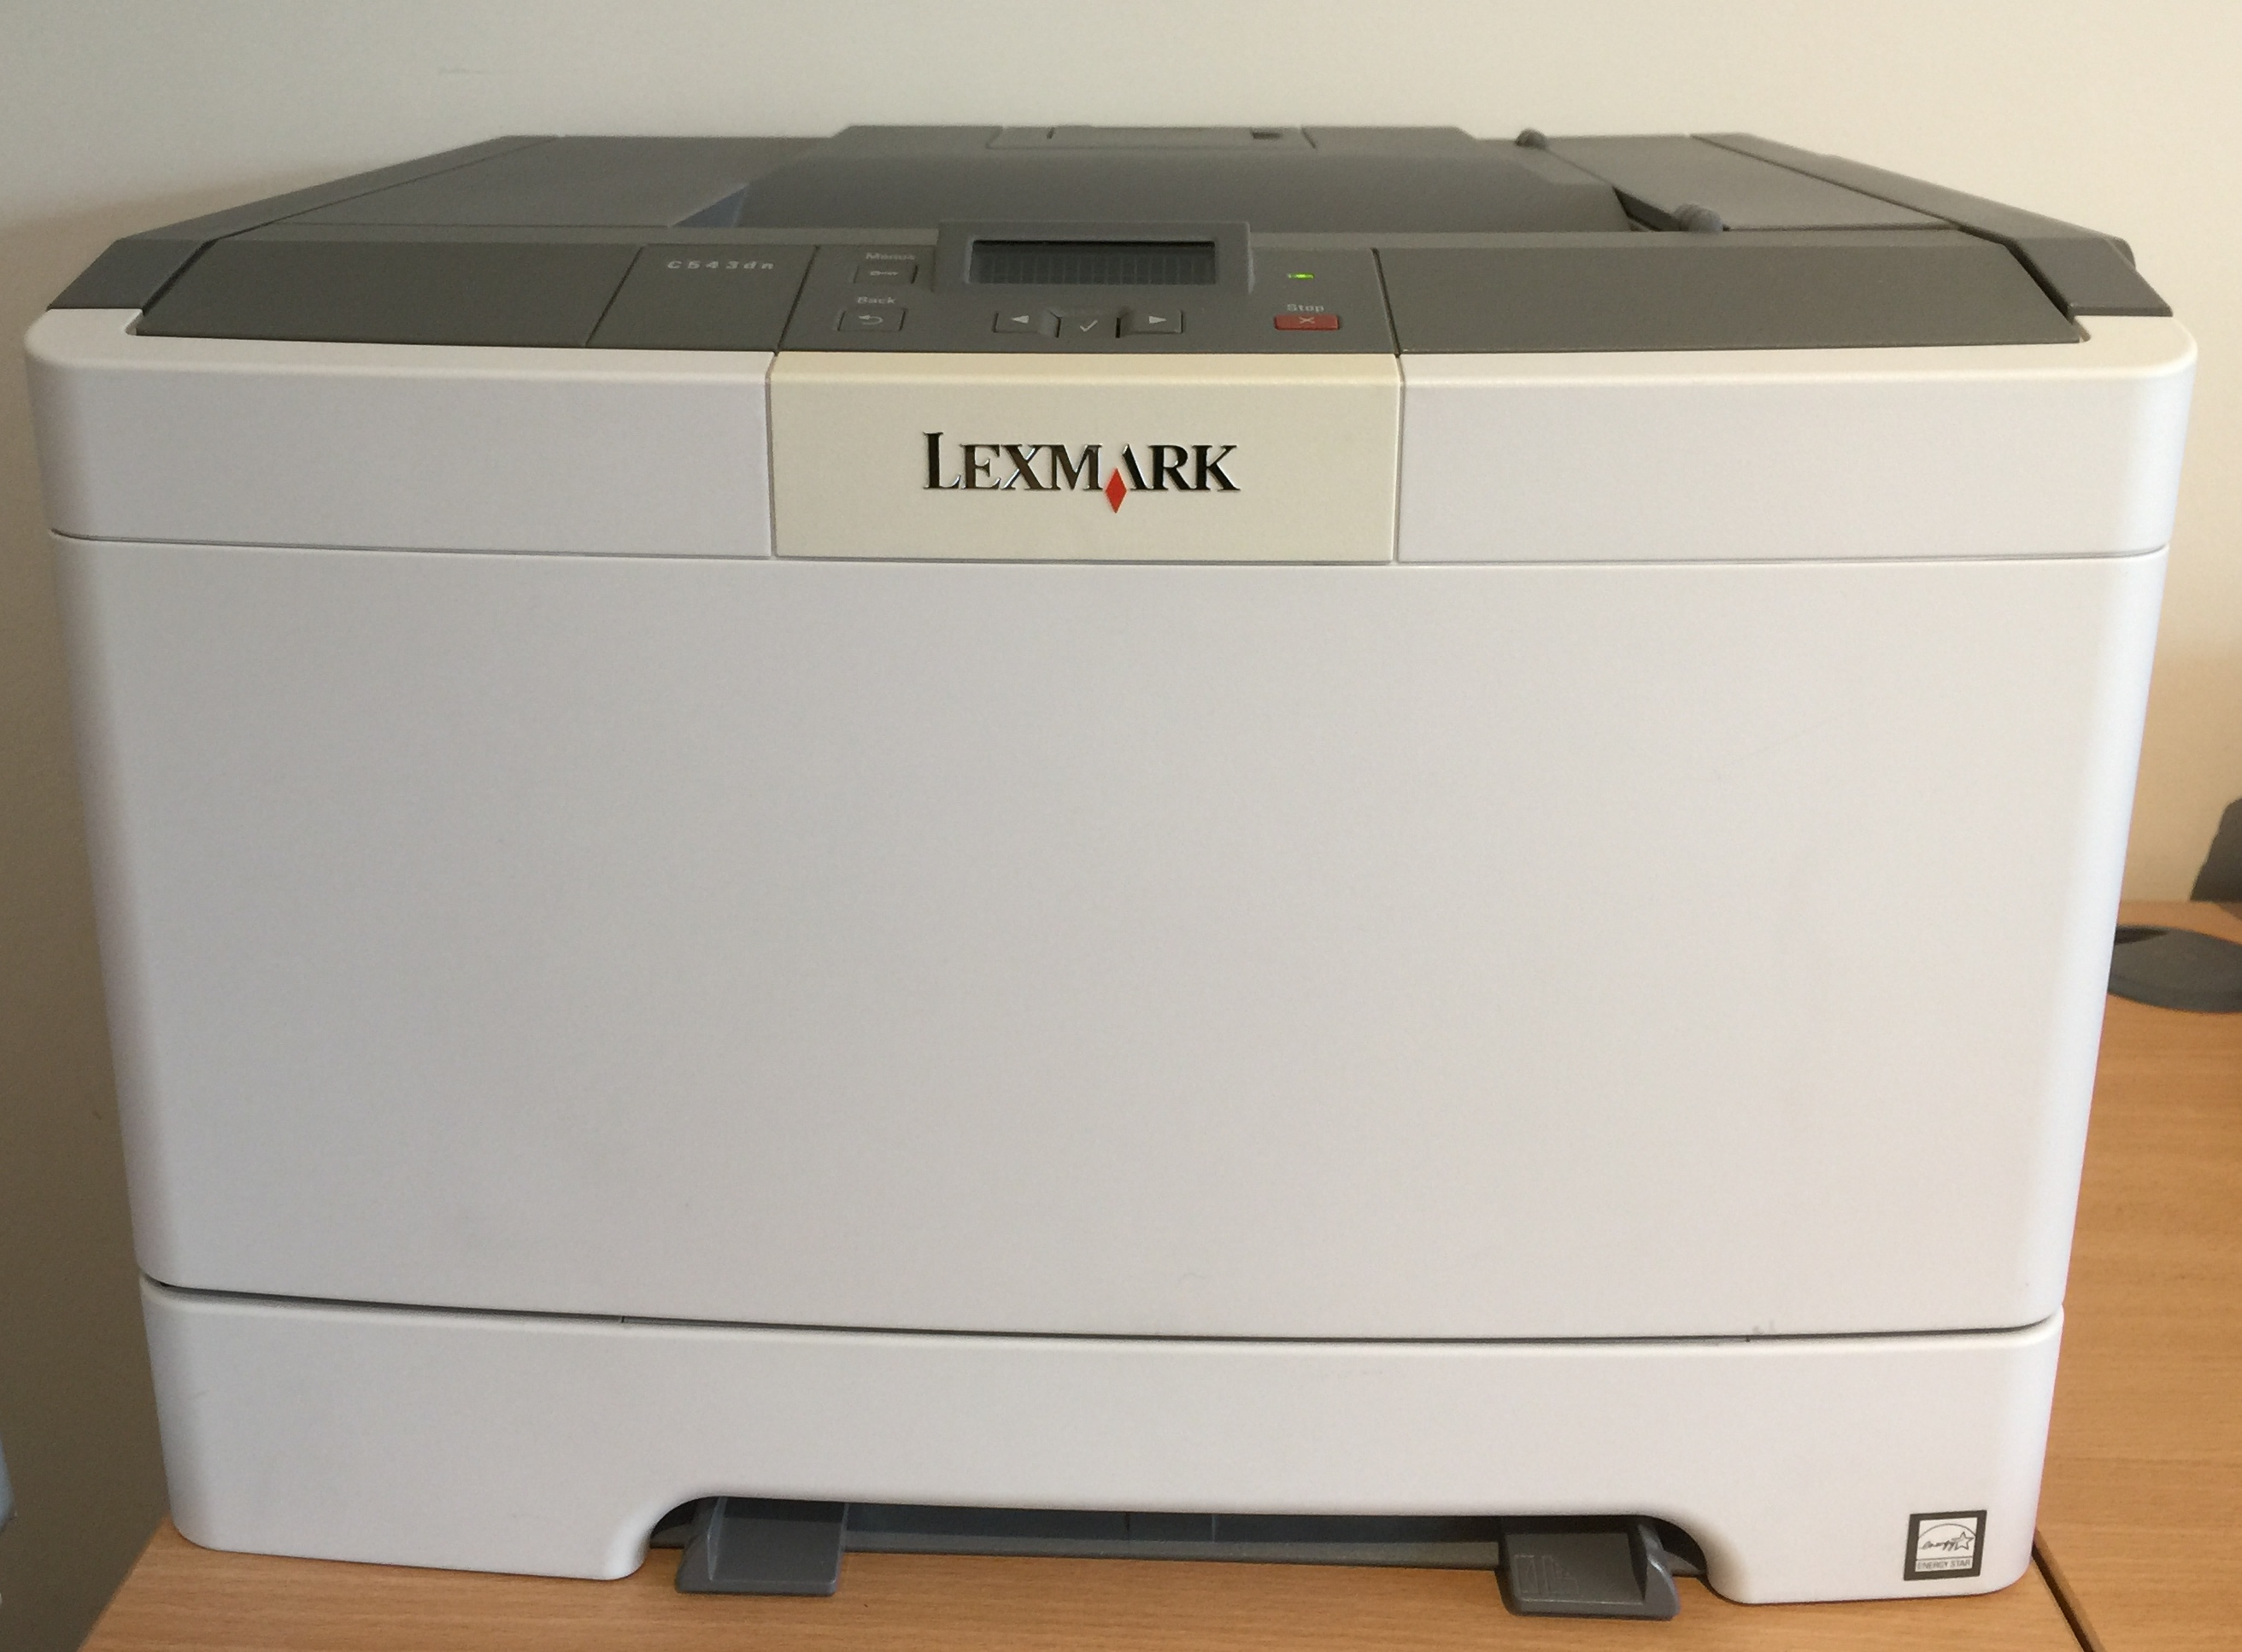 The Printer is Dead, Long Live the Printer    - EMSmastery